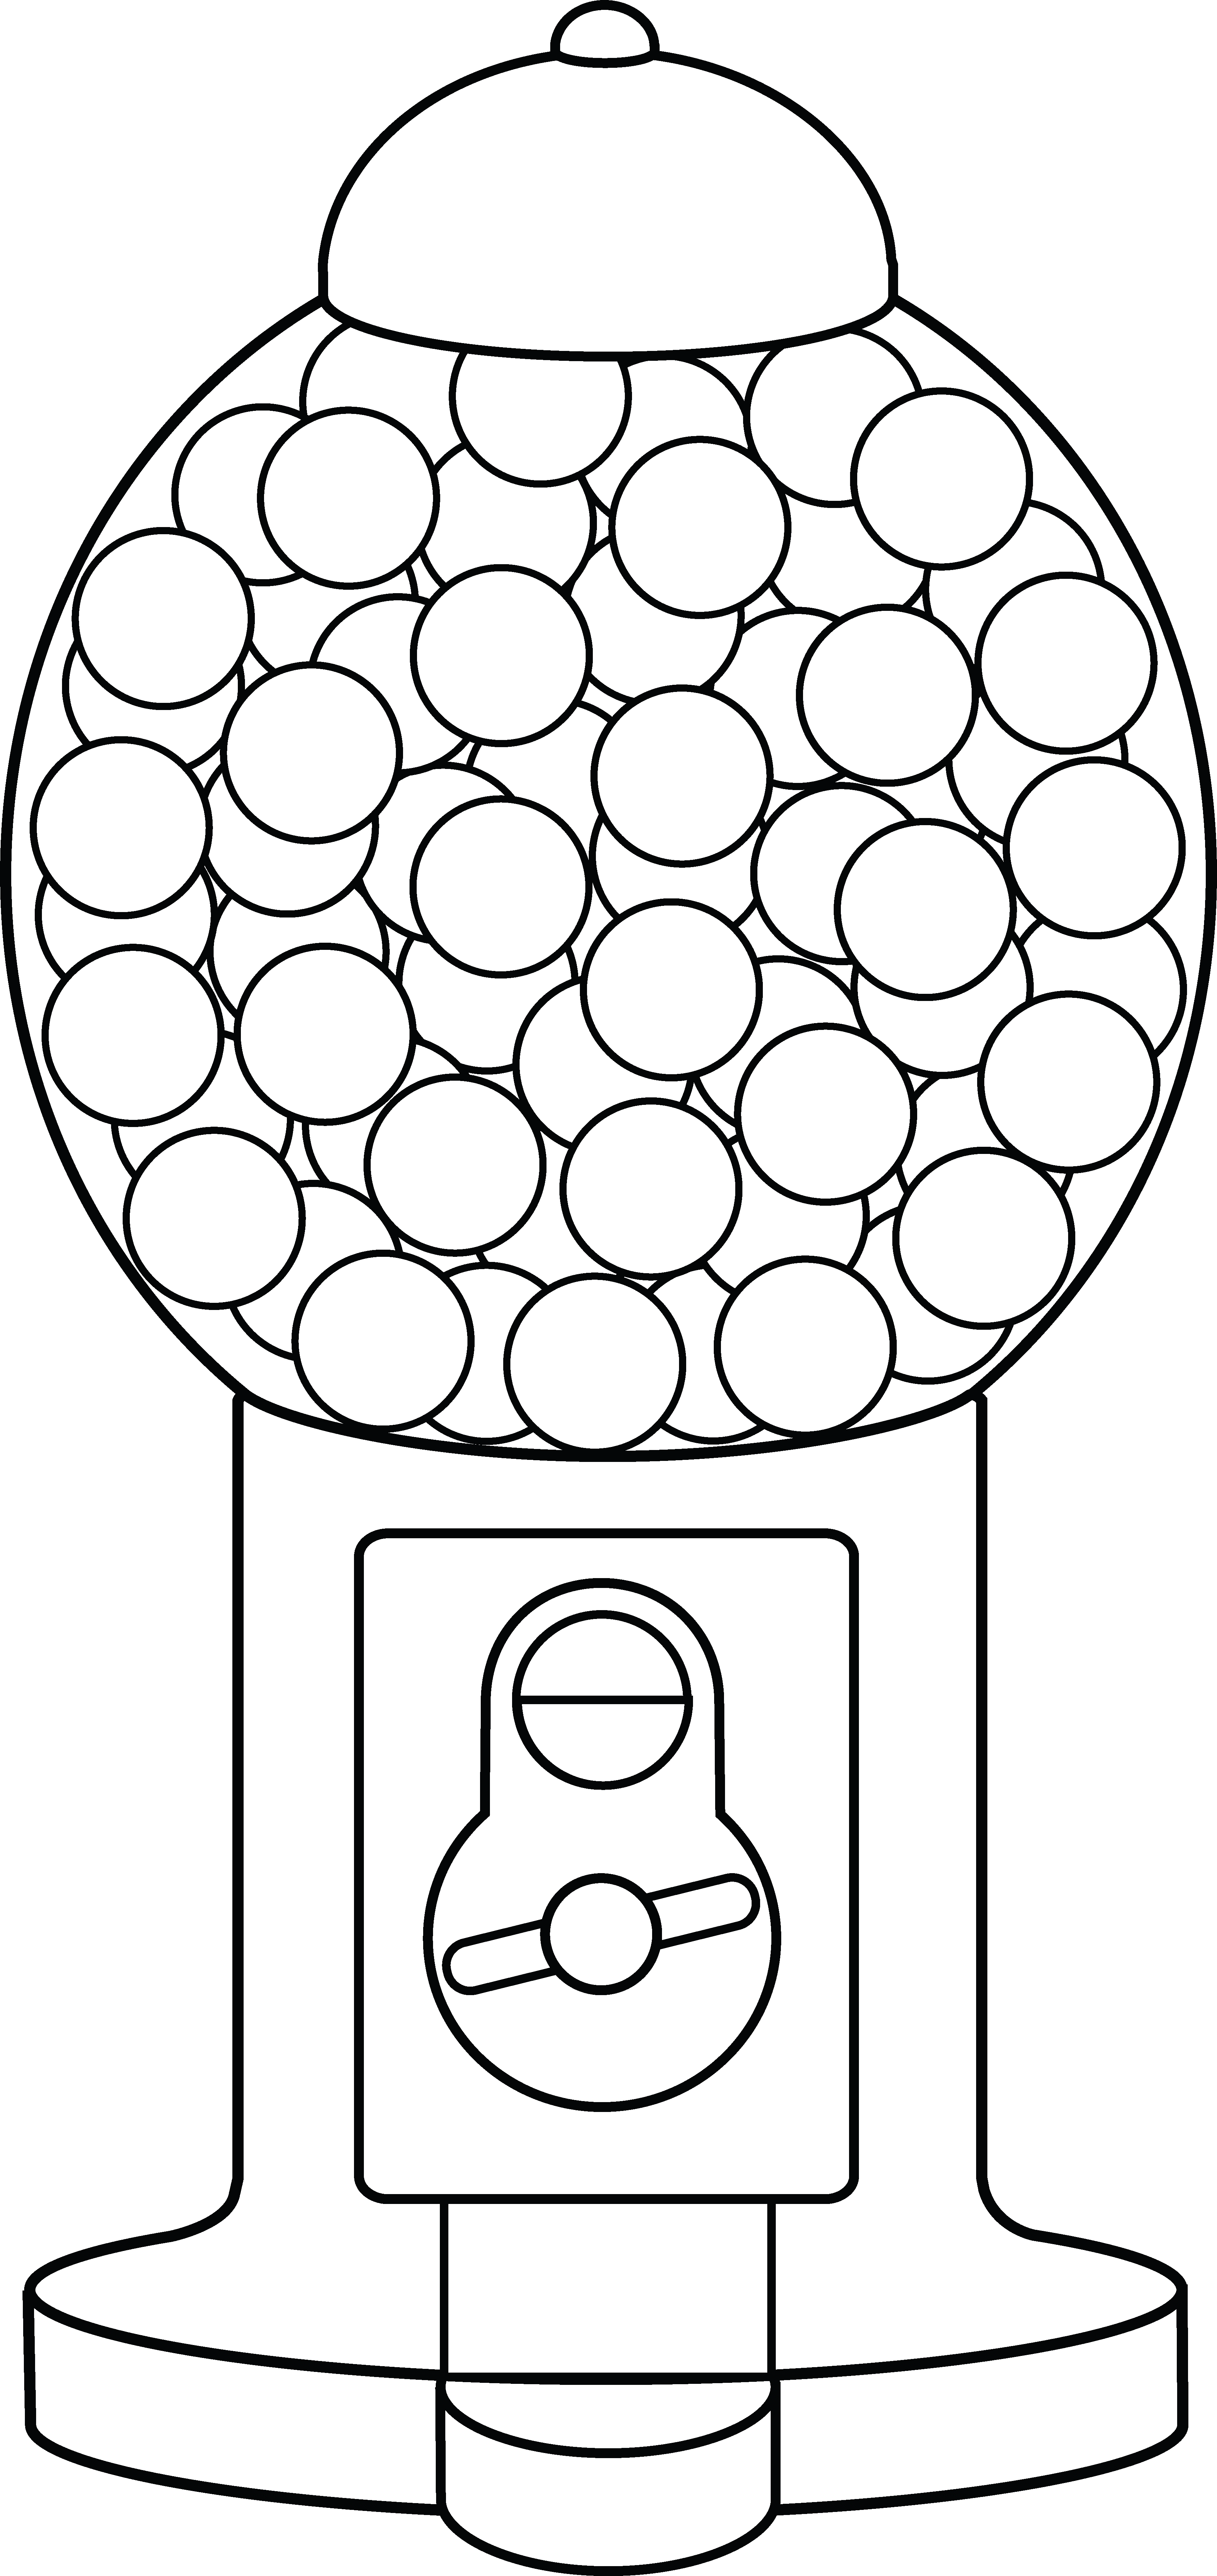 graphic black and white download Coloring page free clip. Gumball machine clipart sweet